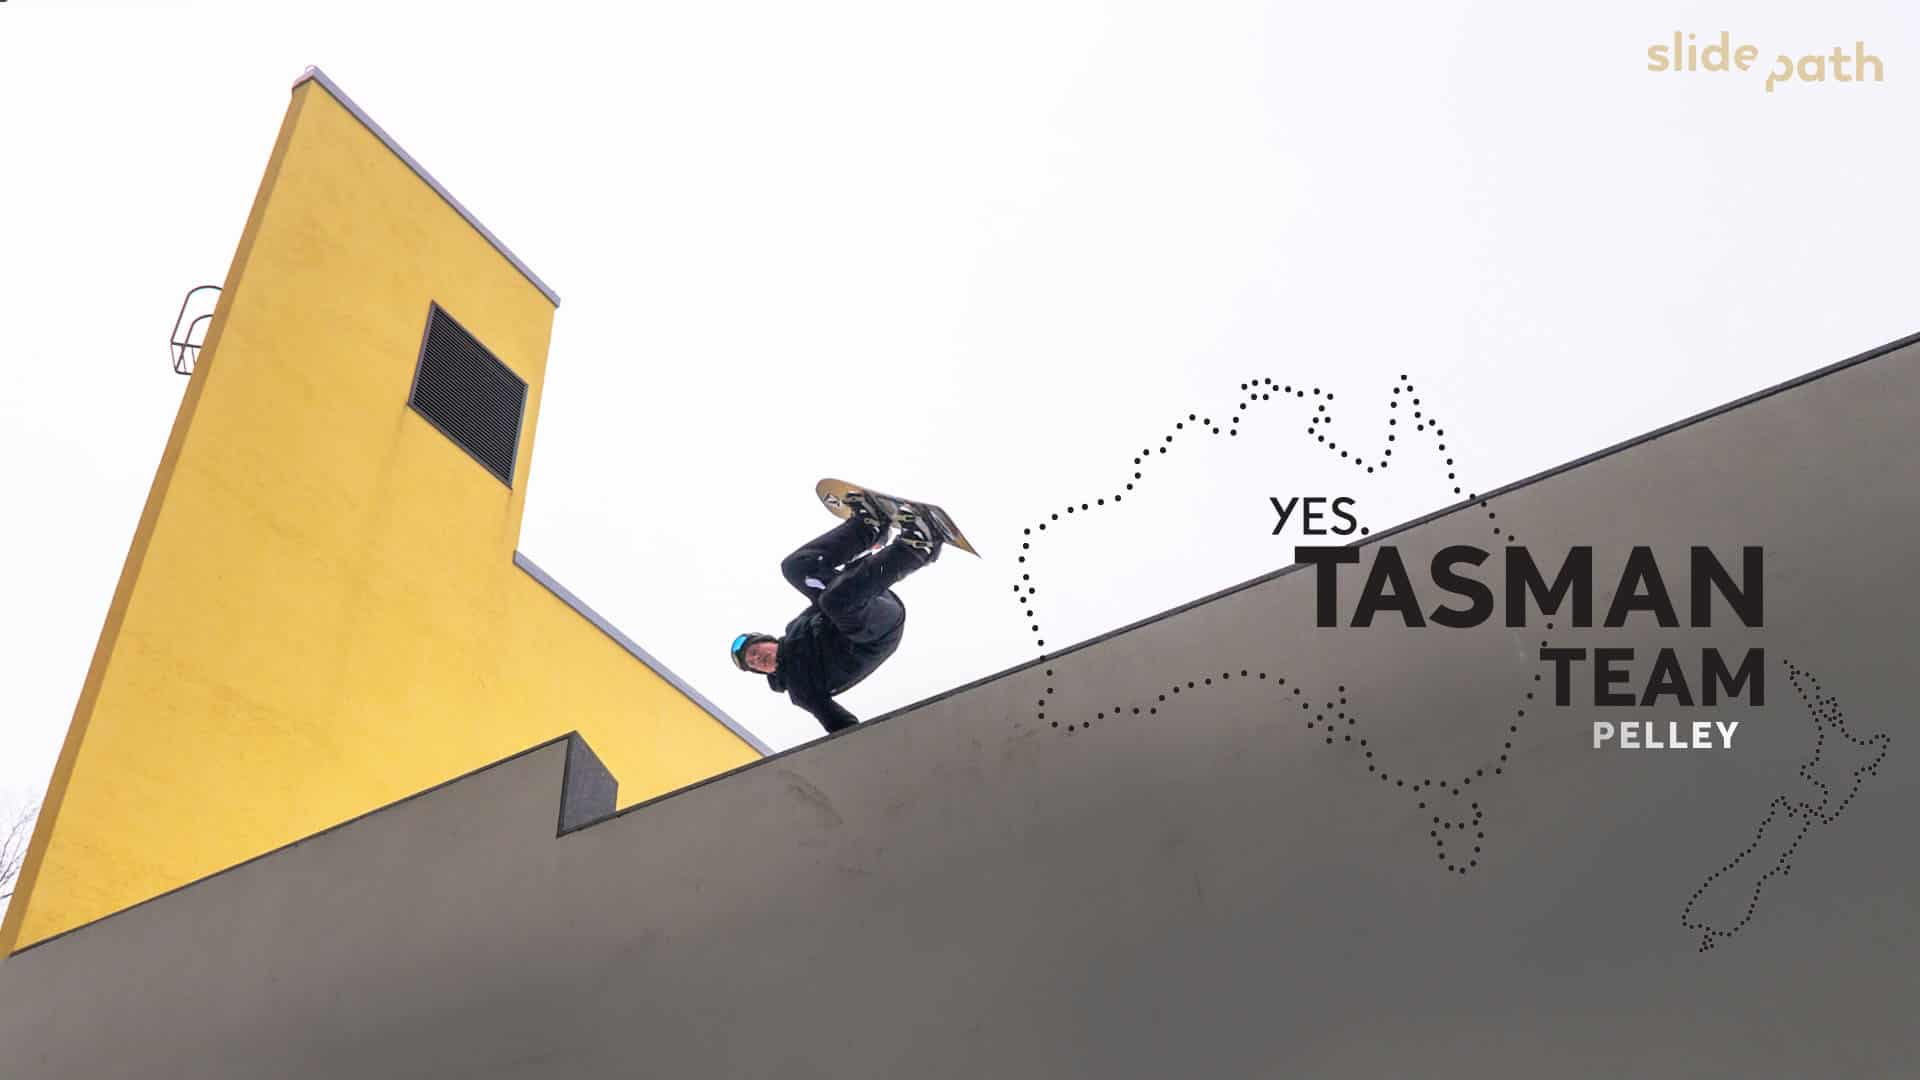 Tasman Team - Tom Pelley - Episode 2 of New Web Series From YES Snowboards